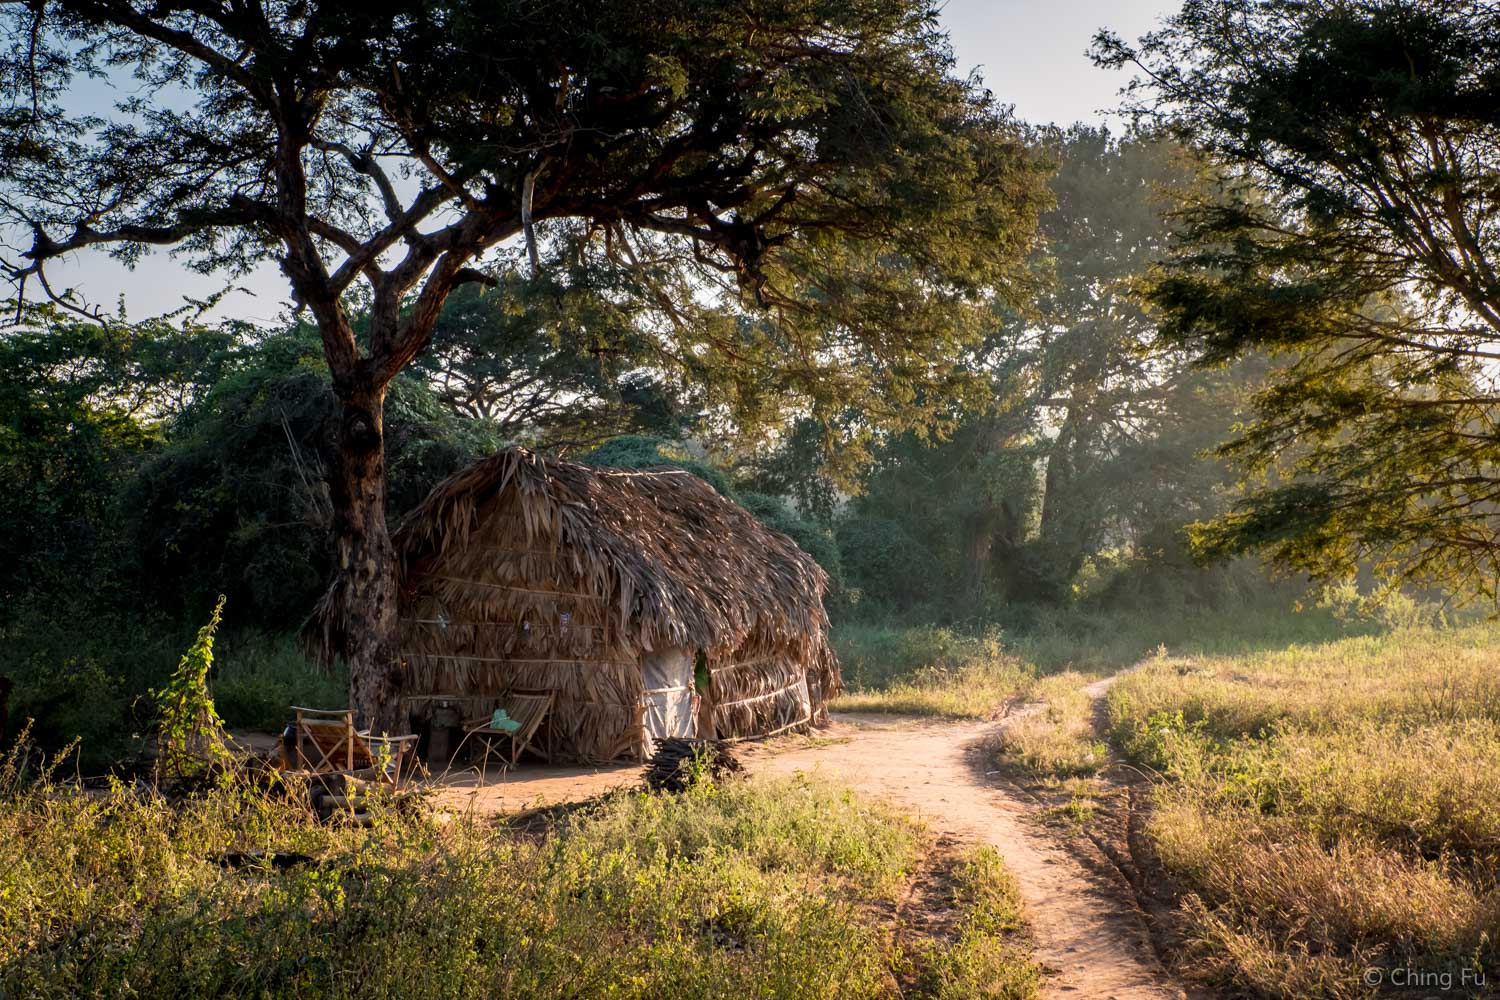 Local villager's home in Bagan.